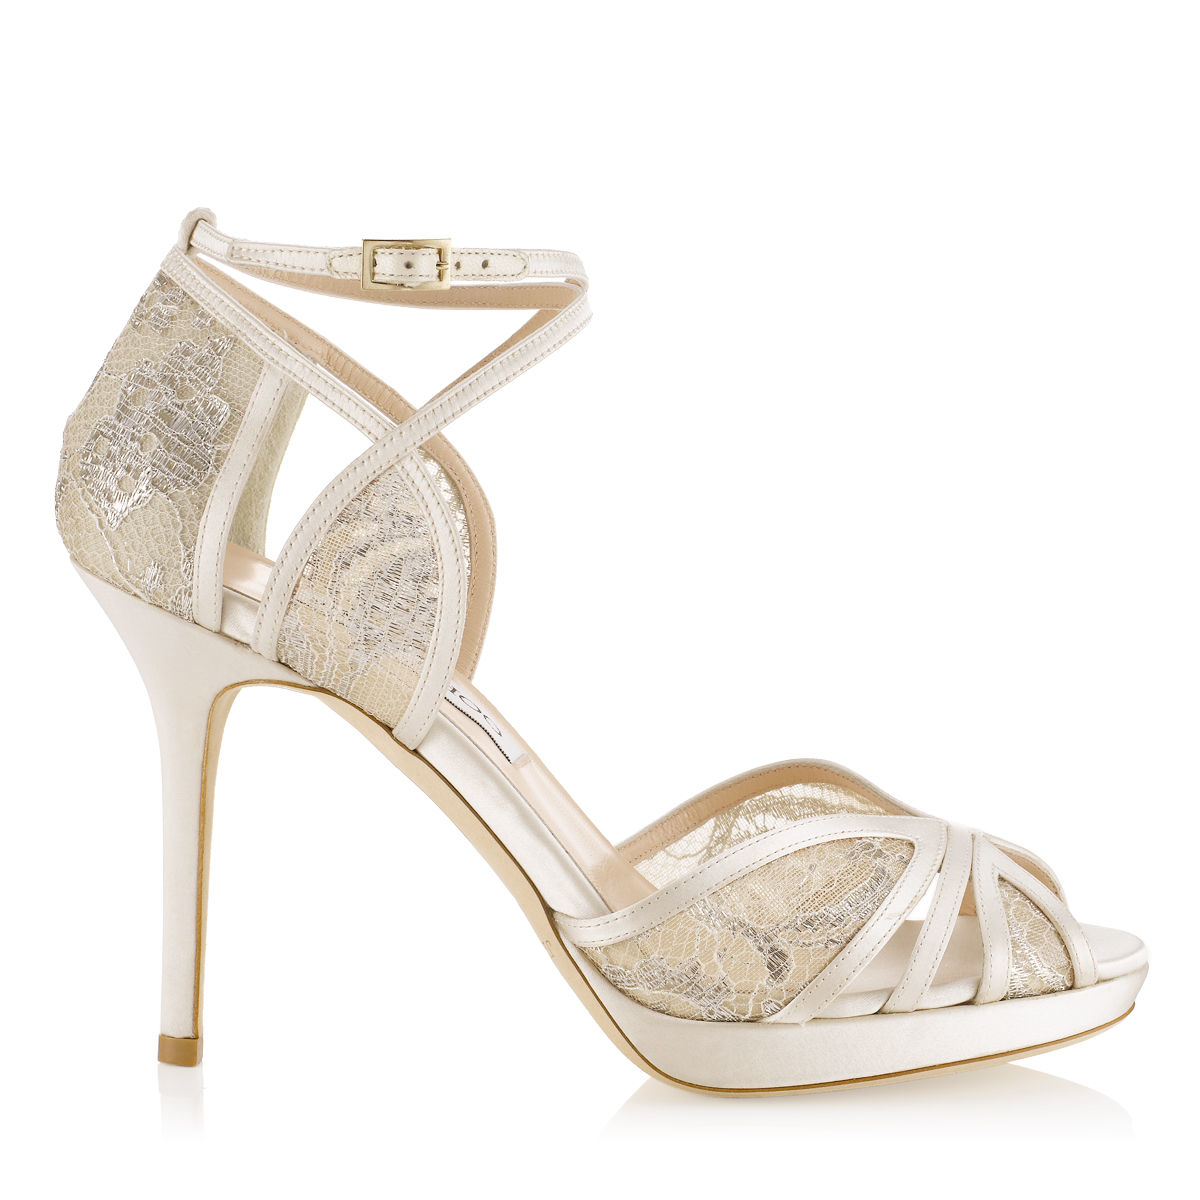 0db7c6545b0 Jimmy Choo Fable Ivory And White Satin Sandals in Natural - Lyst